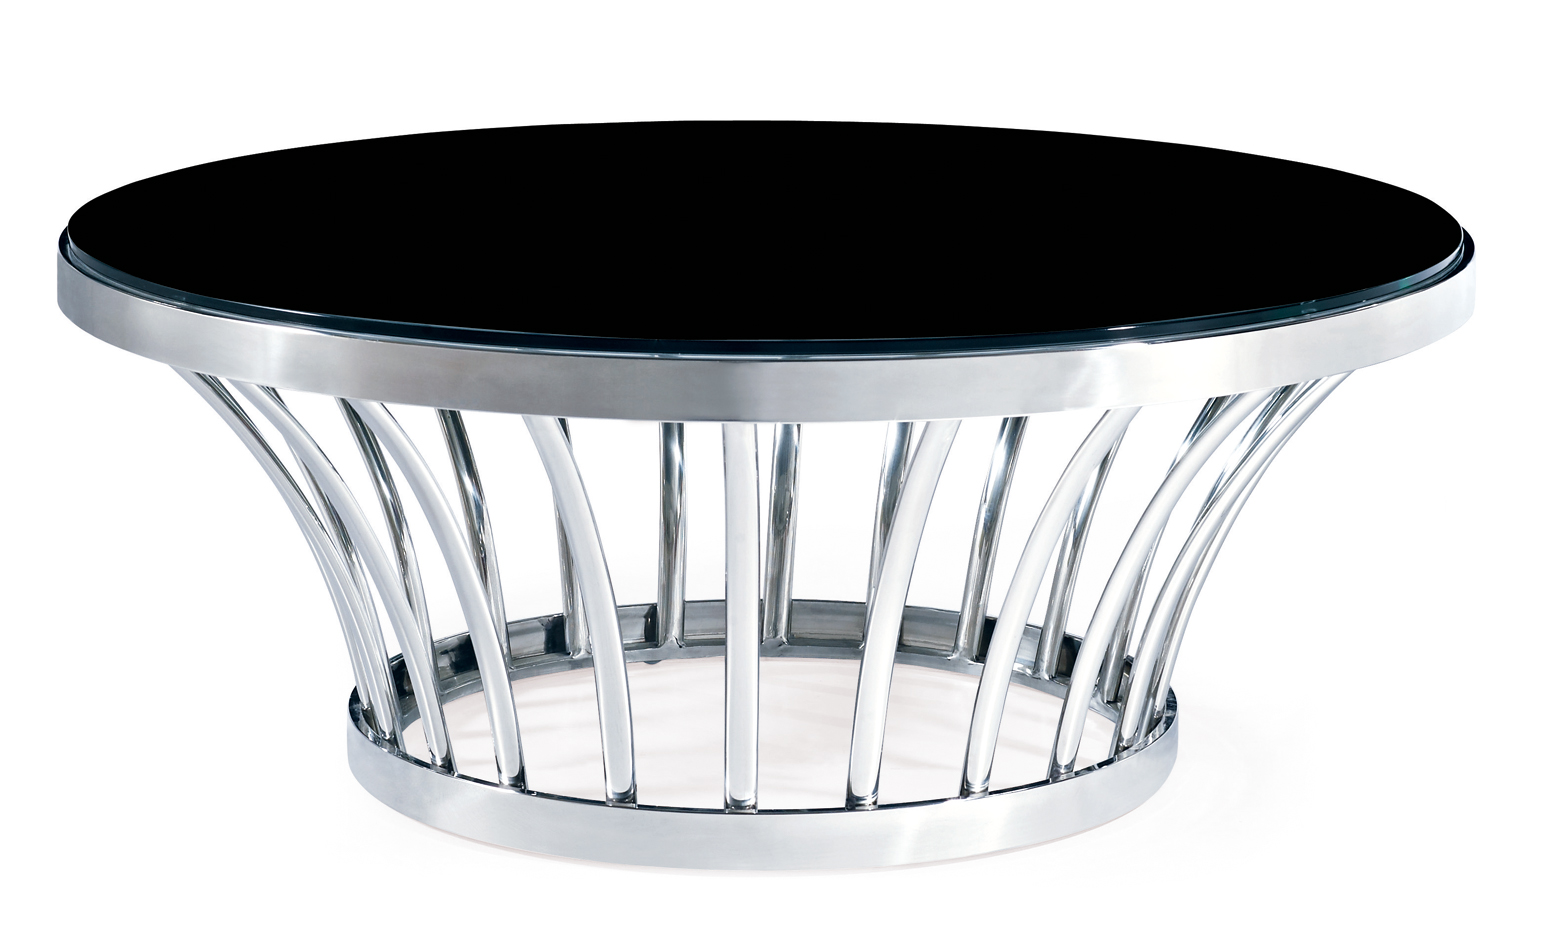 SHIMING FURNITURE MS-3302 Black tempered glass round top coffee table with polish stainles steel foo